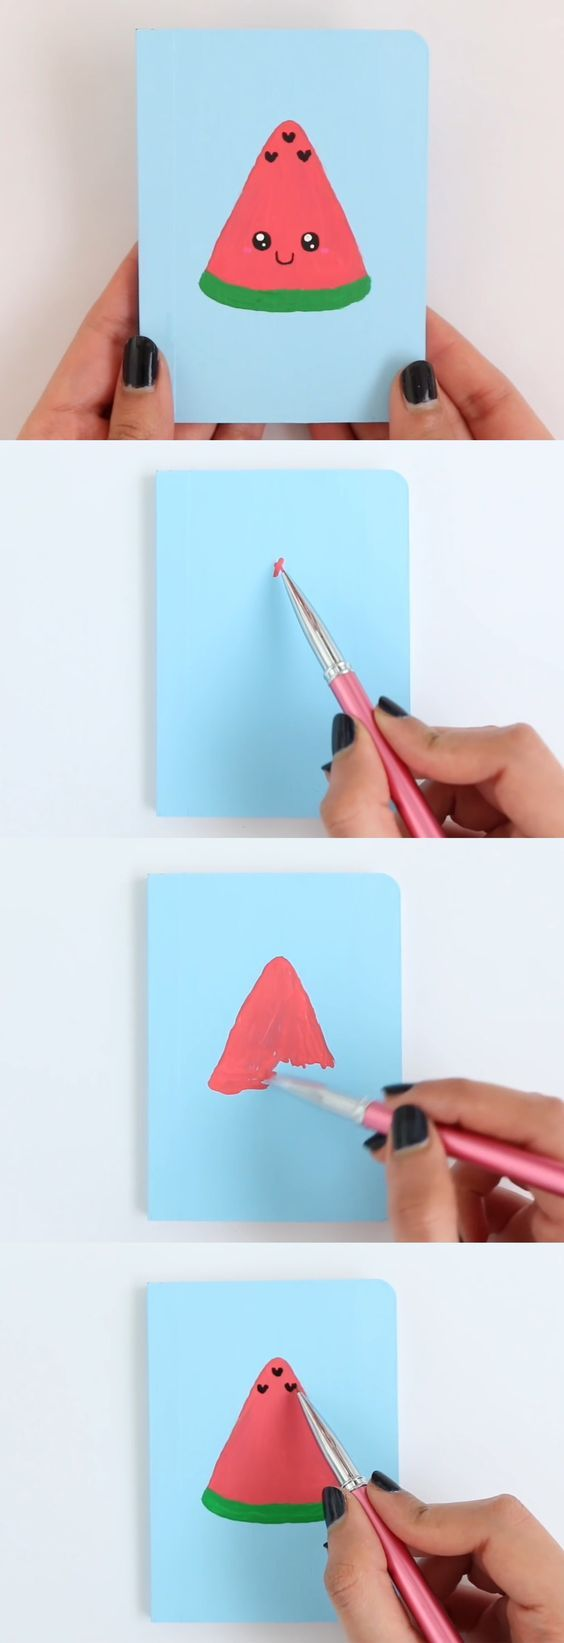 Watermelon-Notebook | DIY Back to School Art Projects | DIY School Supplies for Teens Notebooks